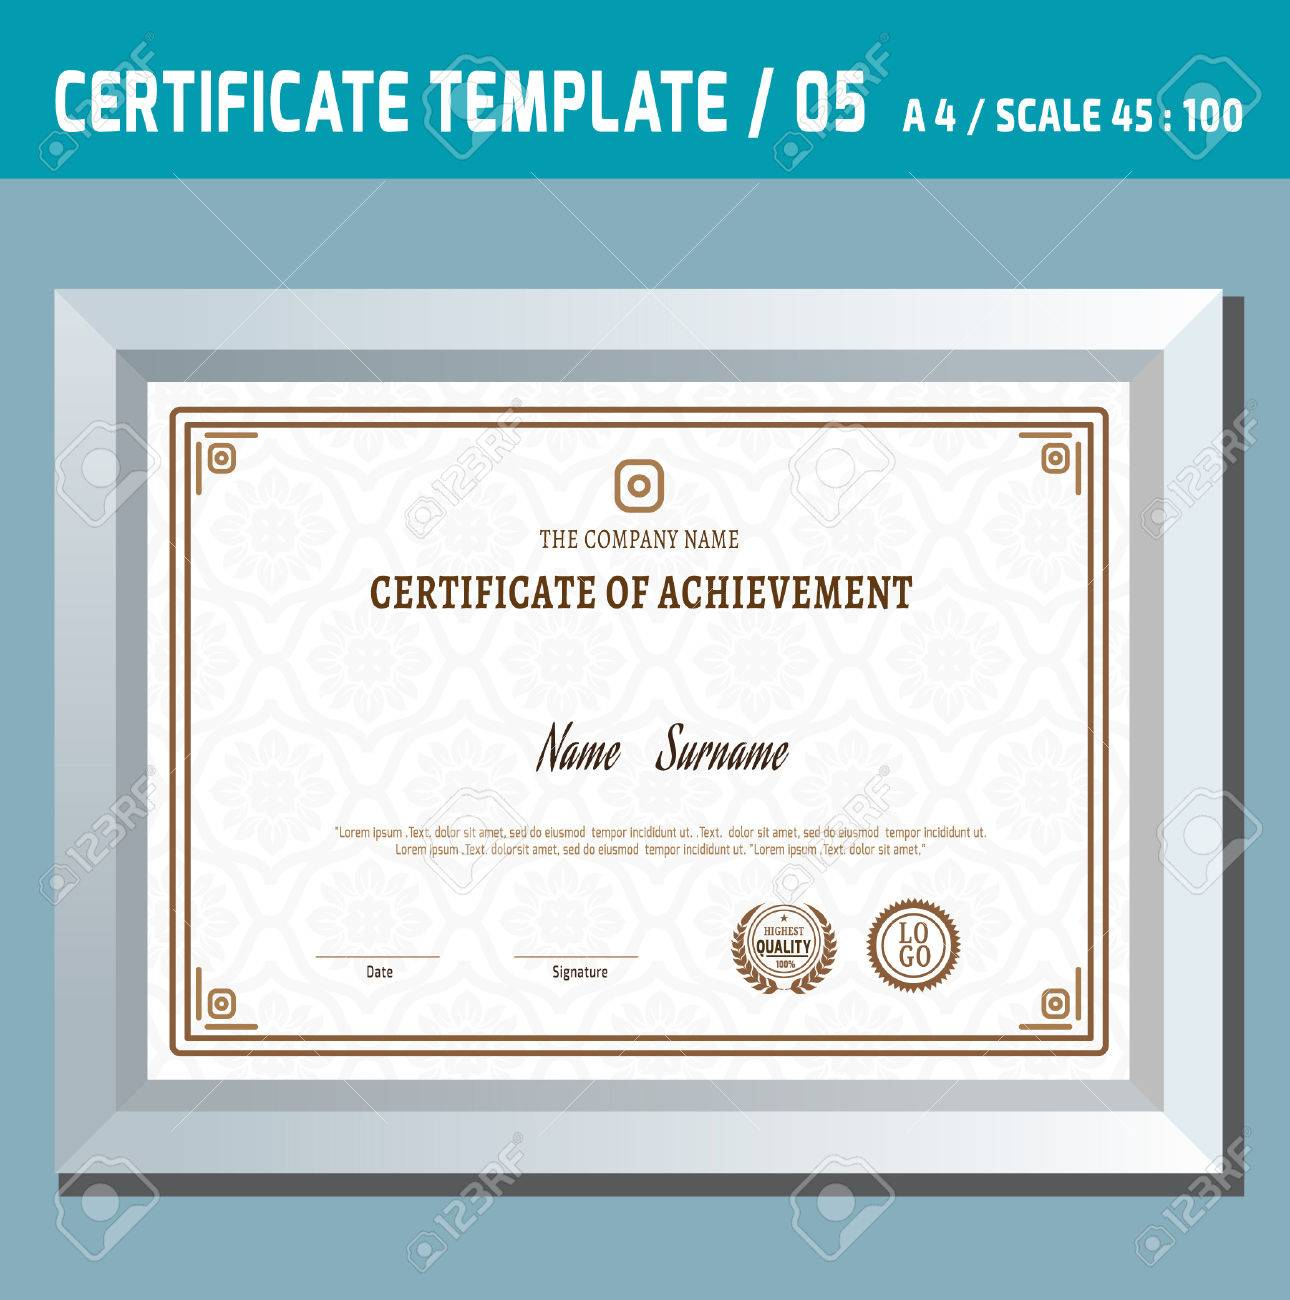 Certificate templatea4ctor design templatentage retro certificate templatea4ctor design templatentage retro frame diploma background stock yadclub